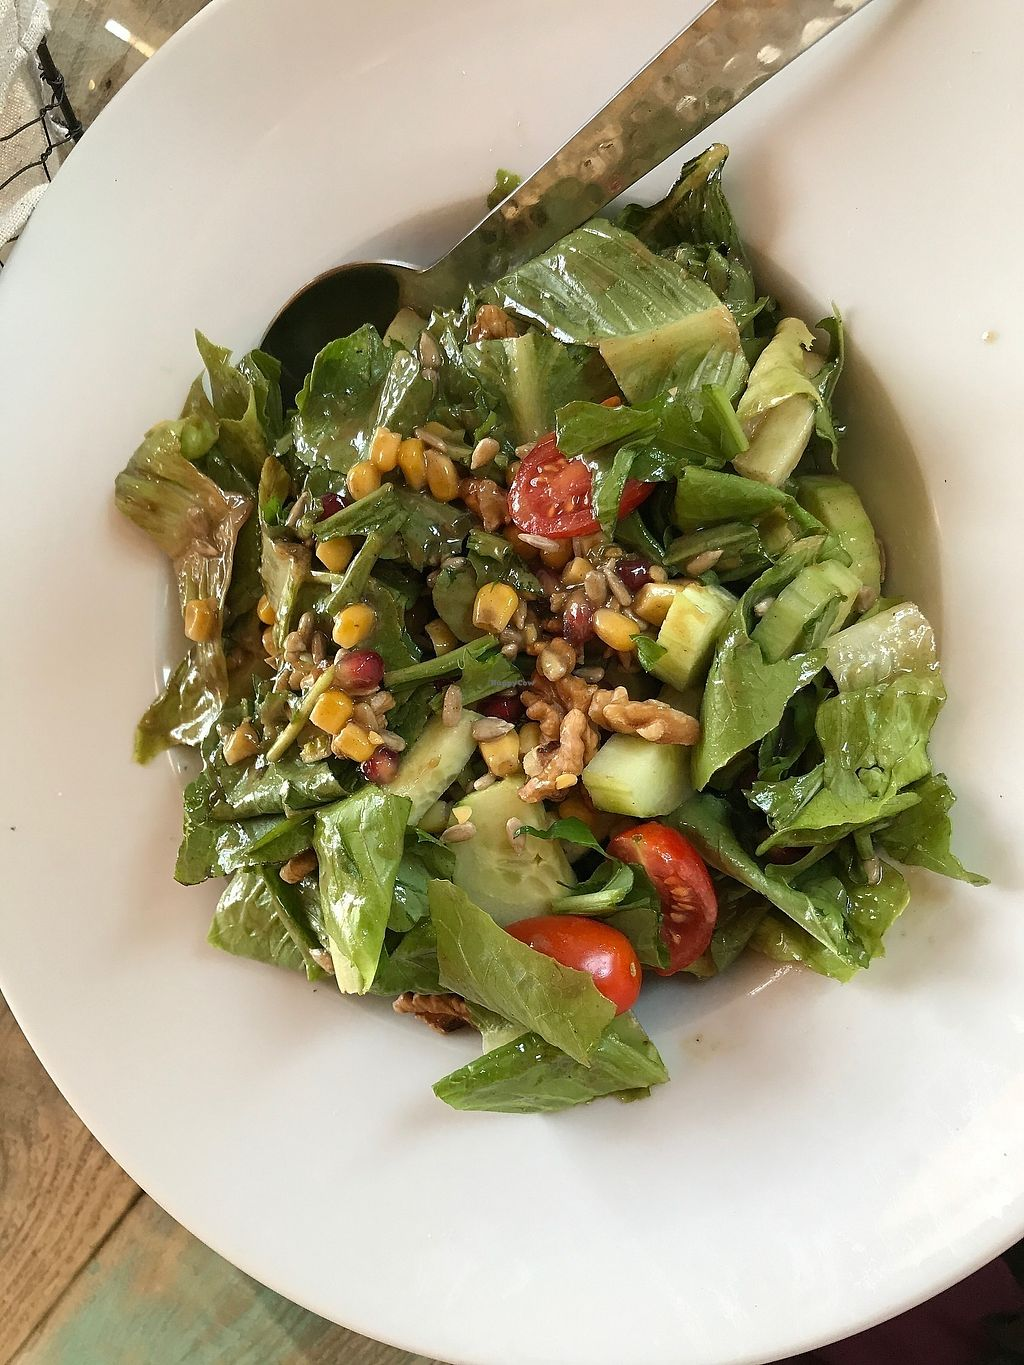 "Photo of Old House  by <a href=""/members/profile/AmyJoyVegan"">AmyJoyVegan</a> <br/>Tahini salad! I could each this every day--fresh greens and veg with nuts, pomegranate seeds and a slightly sweet tahini dressing <br/> June 25, 2017  - <a href='/contact/abuse/image/92924/273183'>Report</a>"